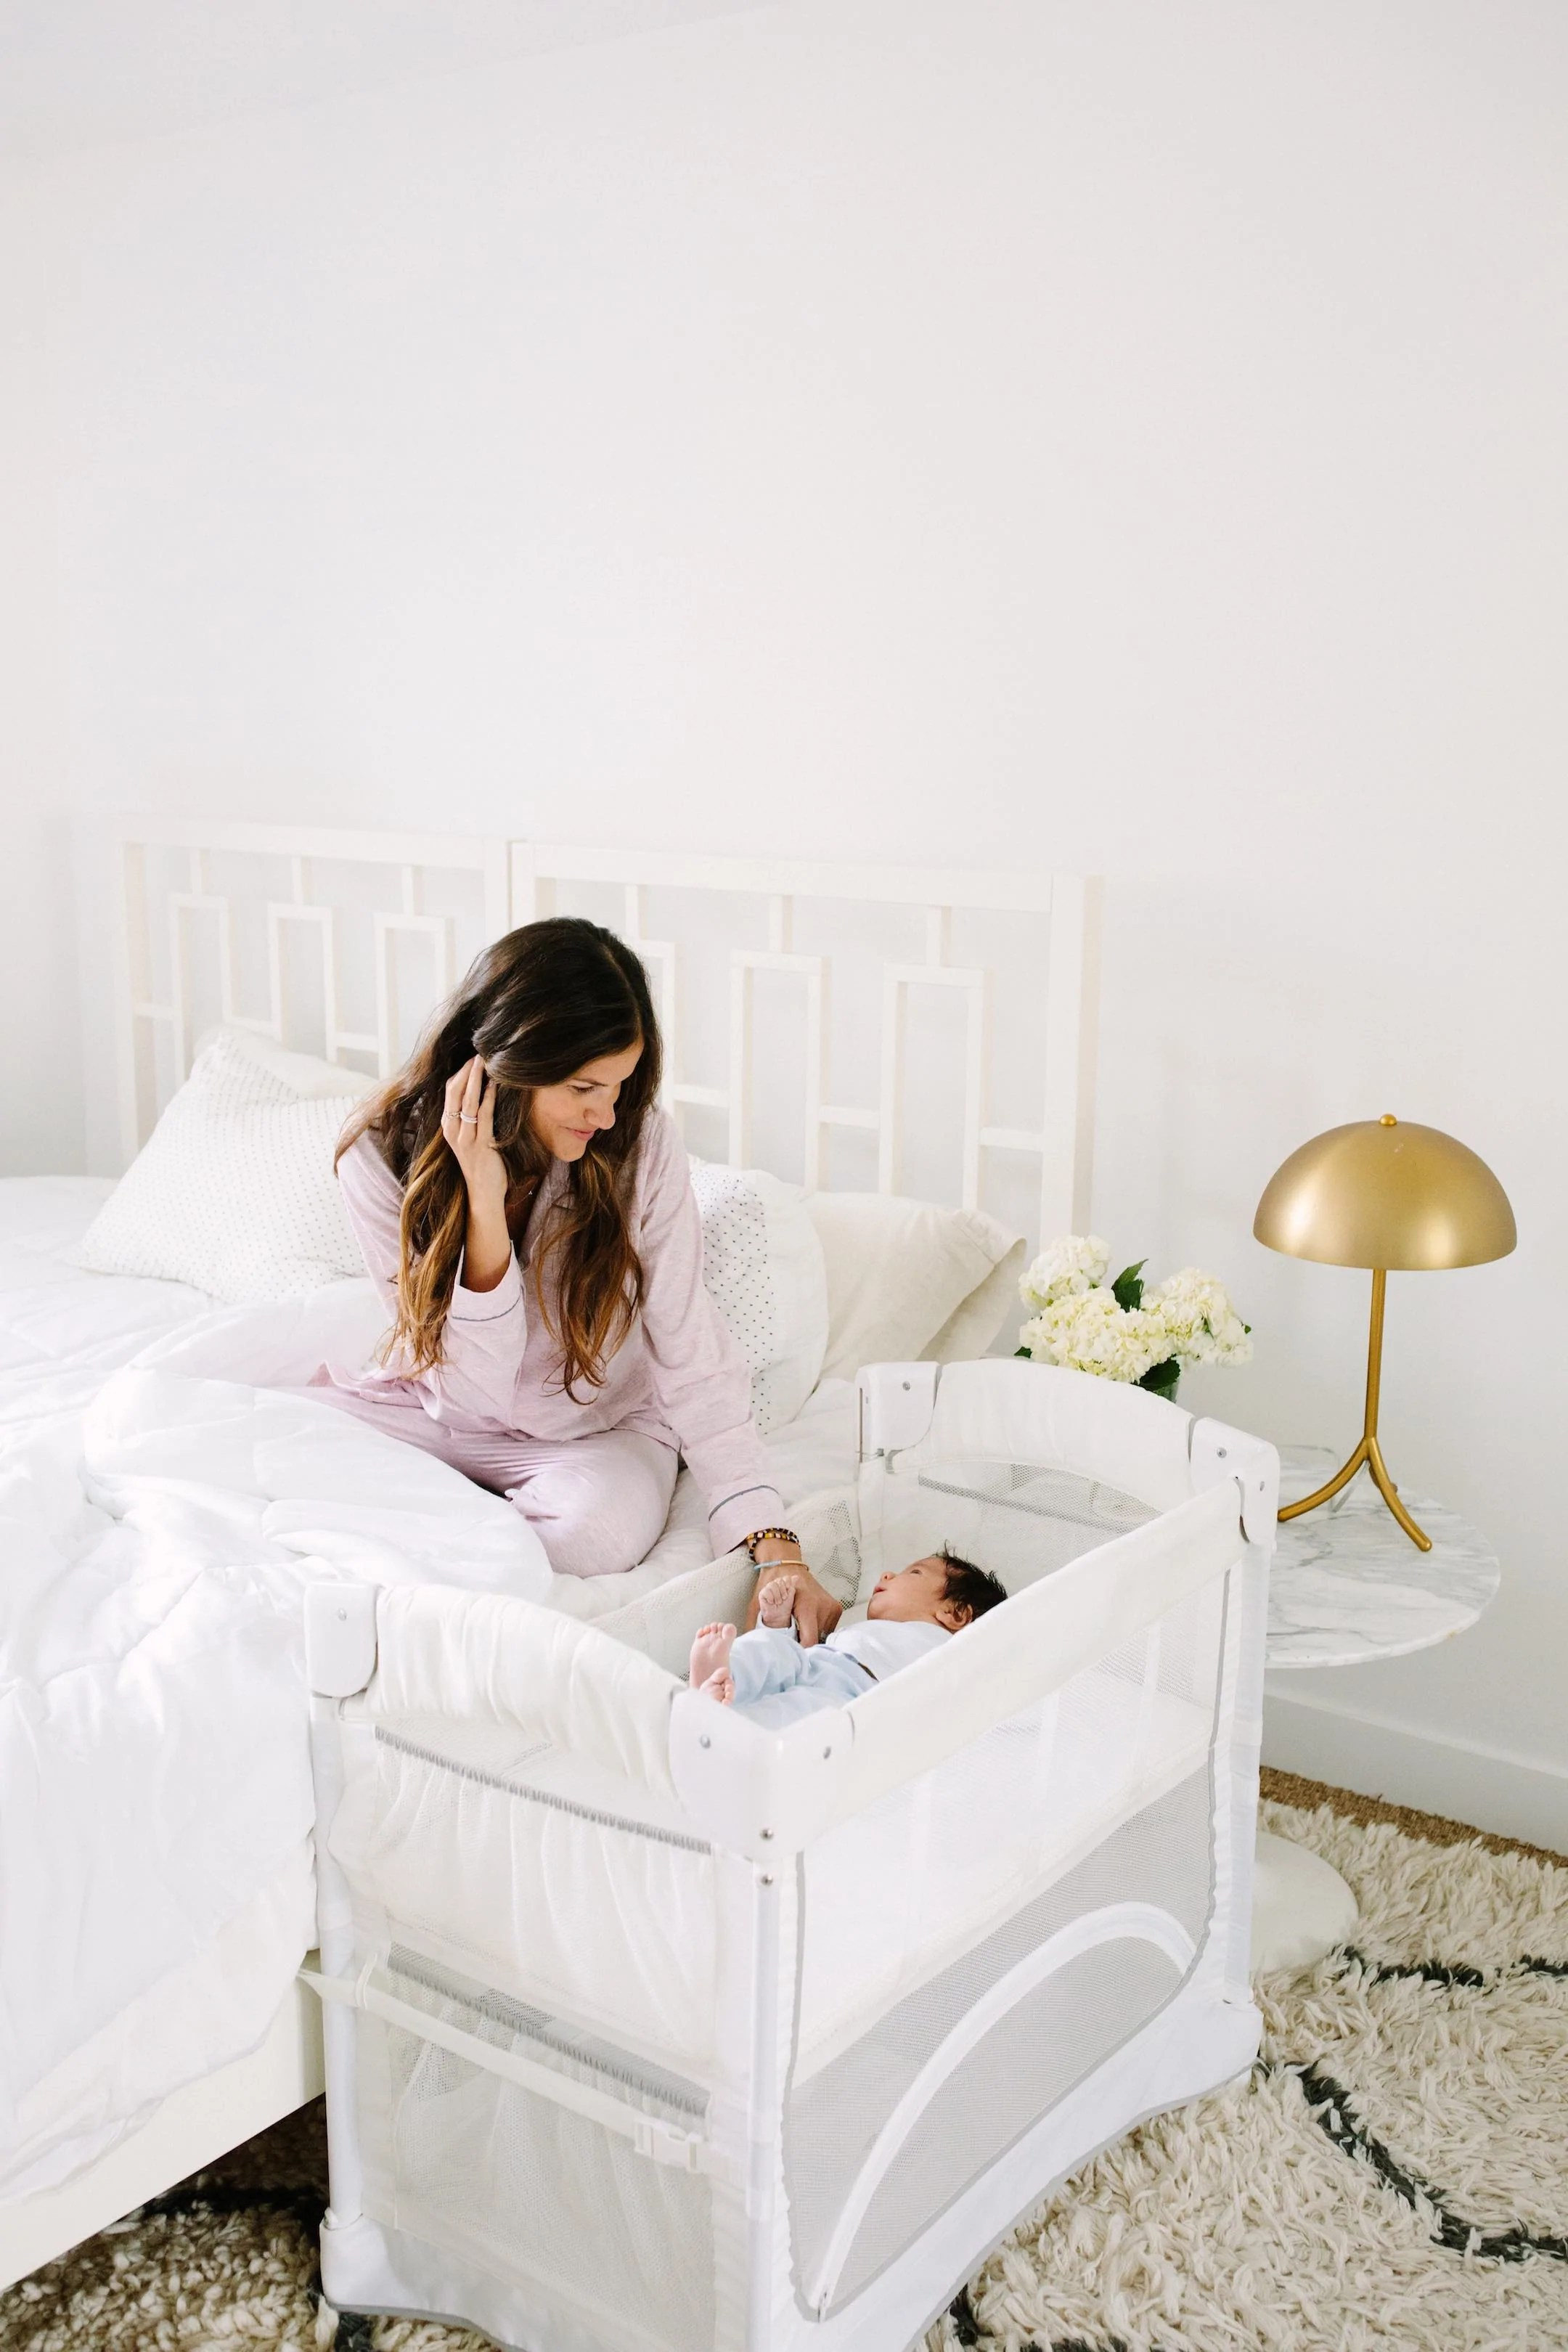 Bassinet Attached To Bed : bassinet, attached, EZEE™, CO-SLEEPER®, Arm's, Reach, Concepts